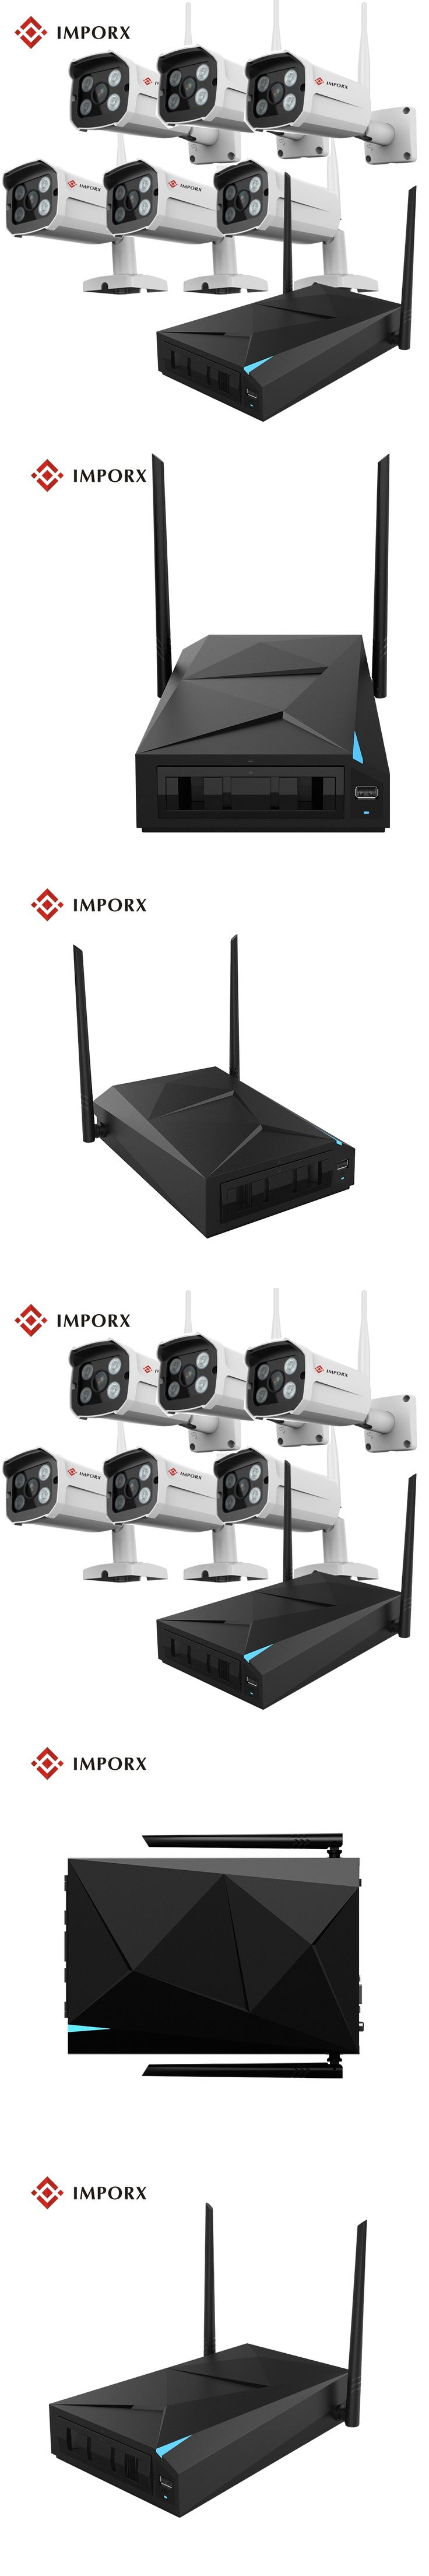 2017 CCTV Security System HD 8CH NVR with 6PCS Bullet 720P IR Night Vision Wireless IP Camera 8 Channel Video Surveillance Kit